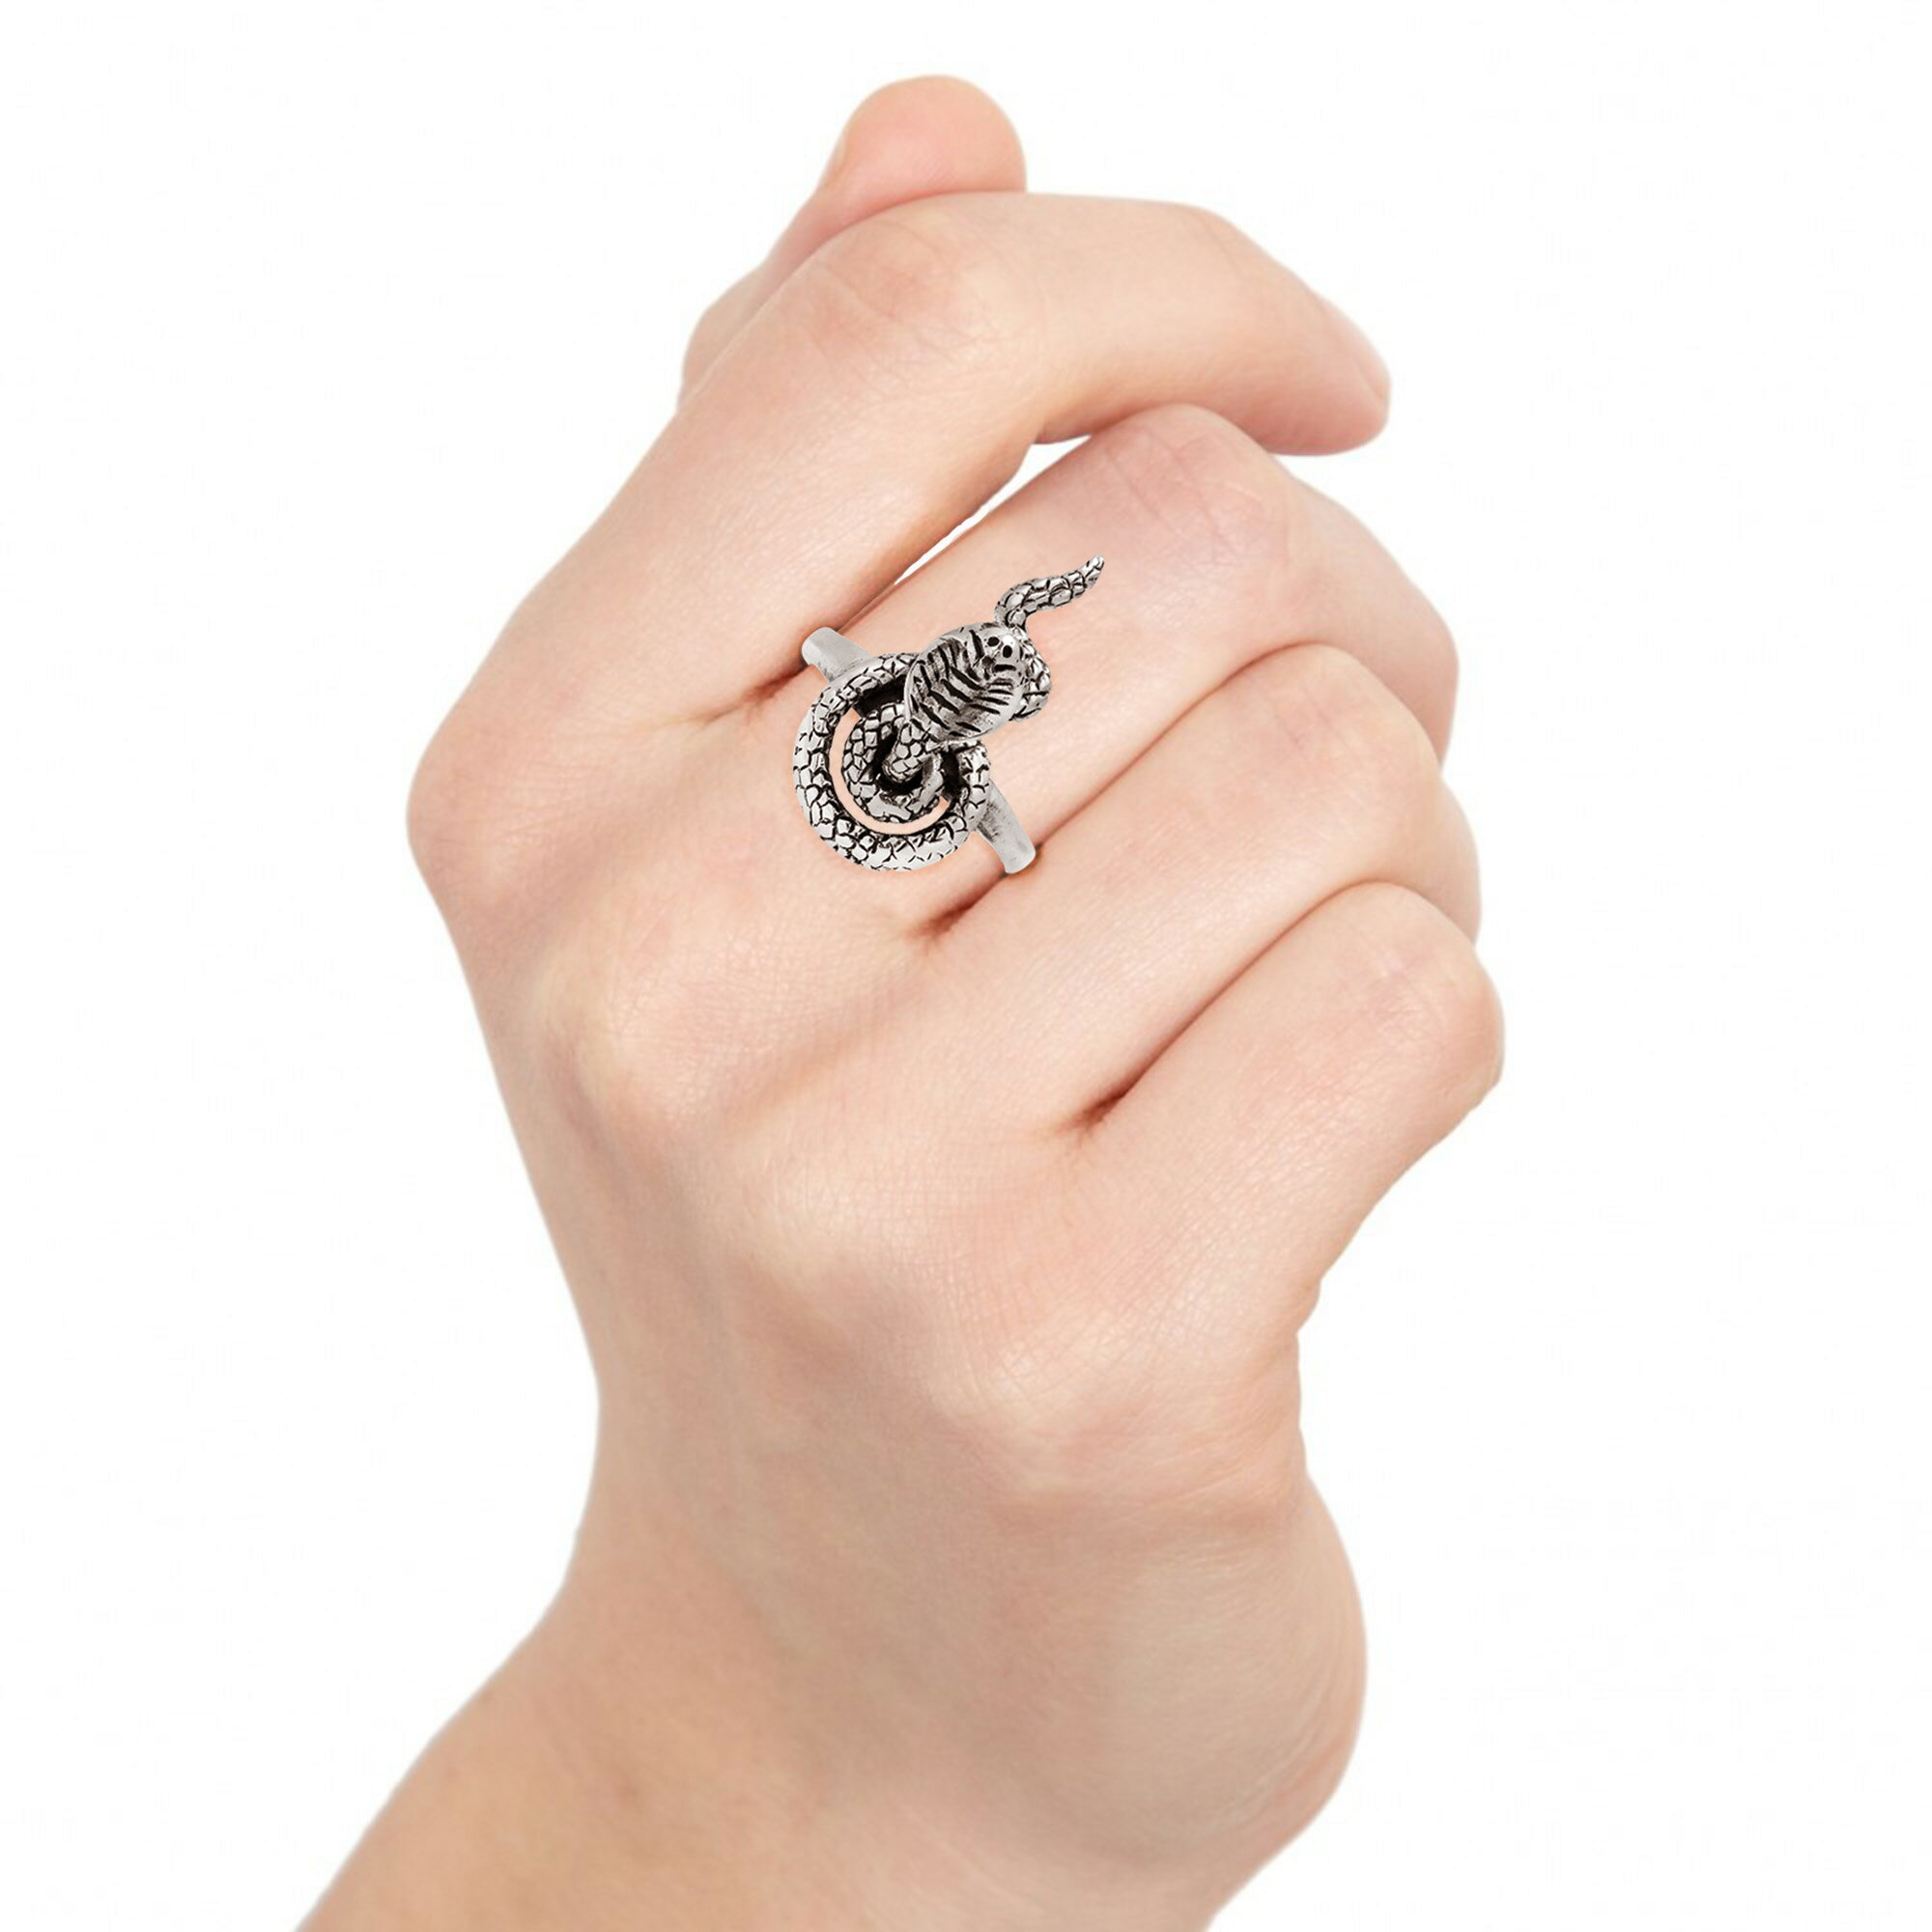 Fatal King Cobra Snake Movable Head Sterling Silver Ring (Thailand) 4